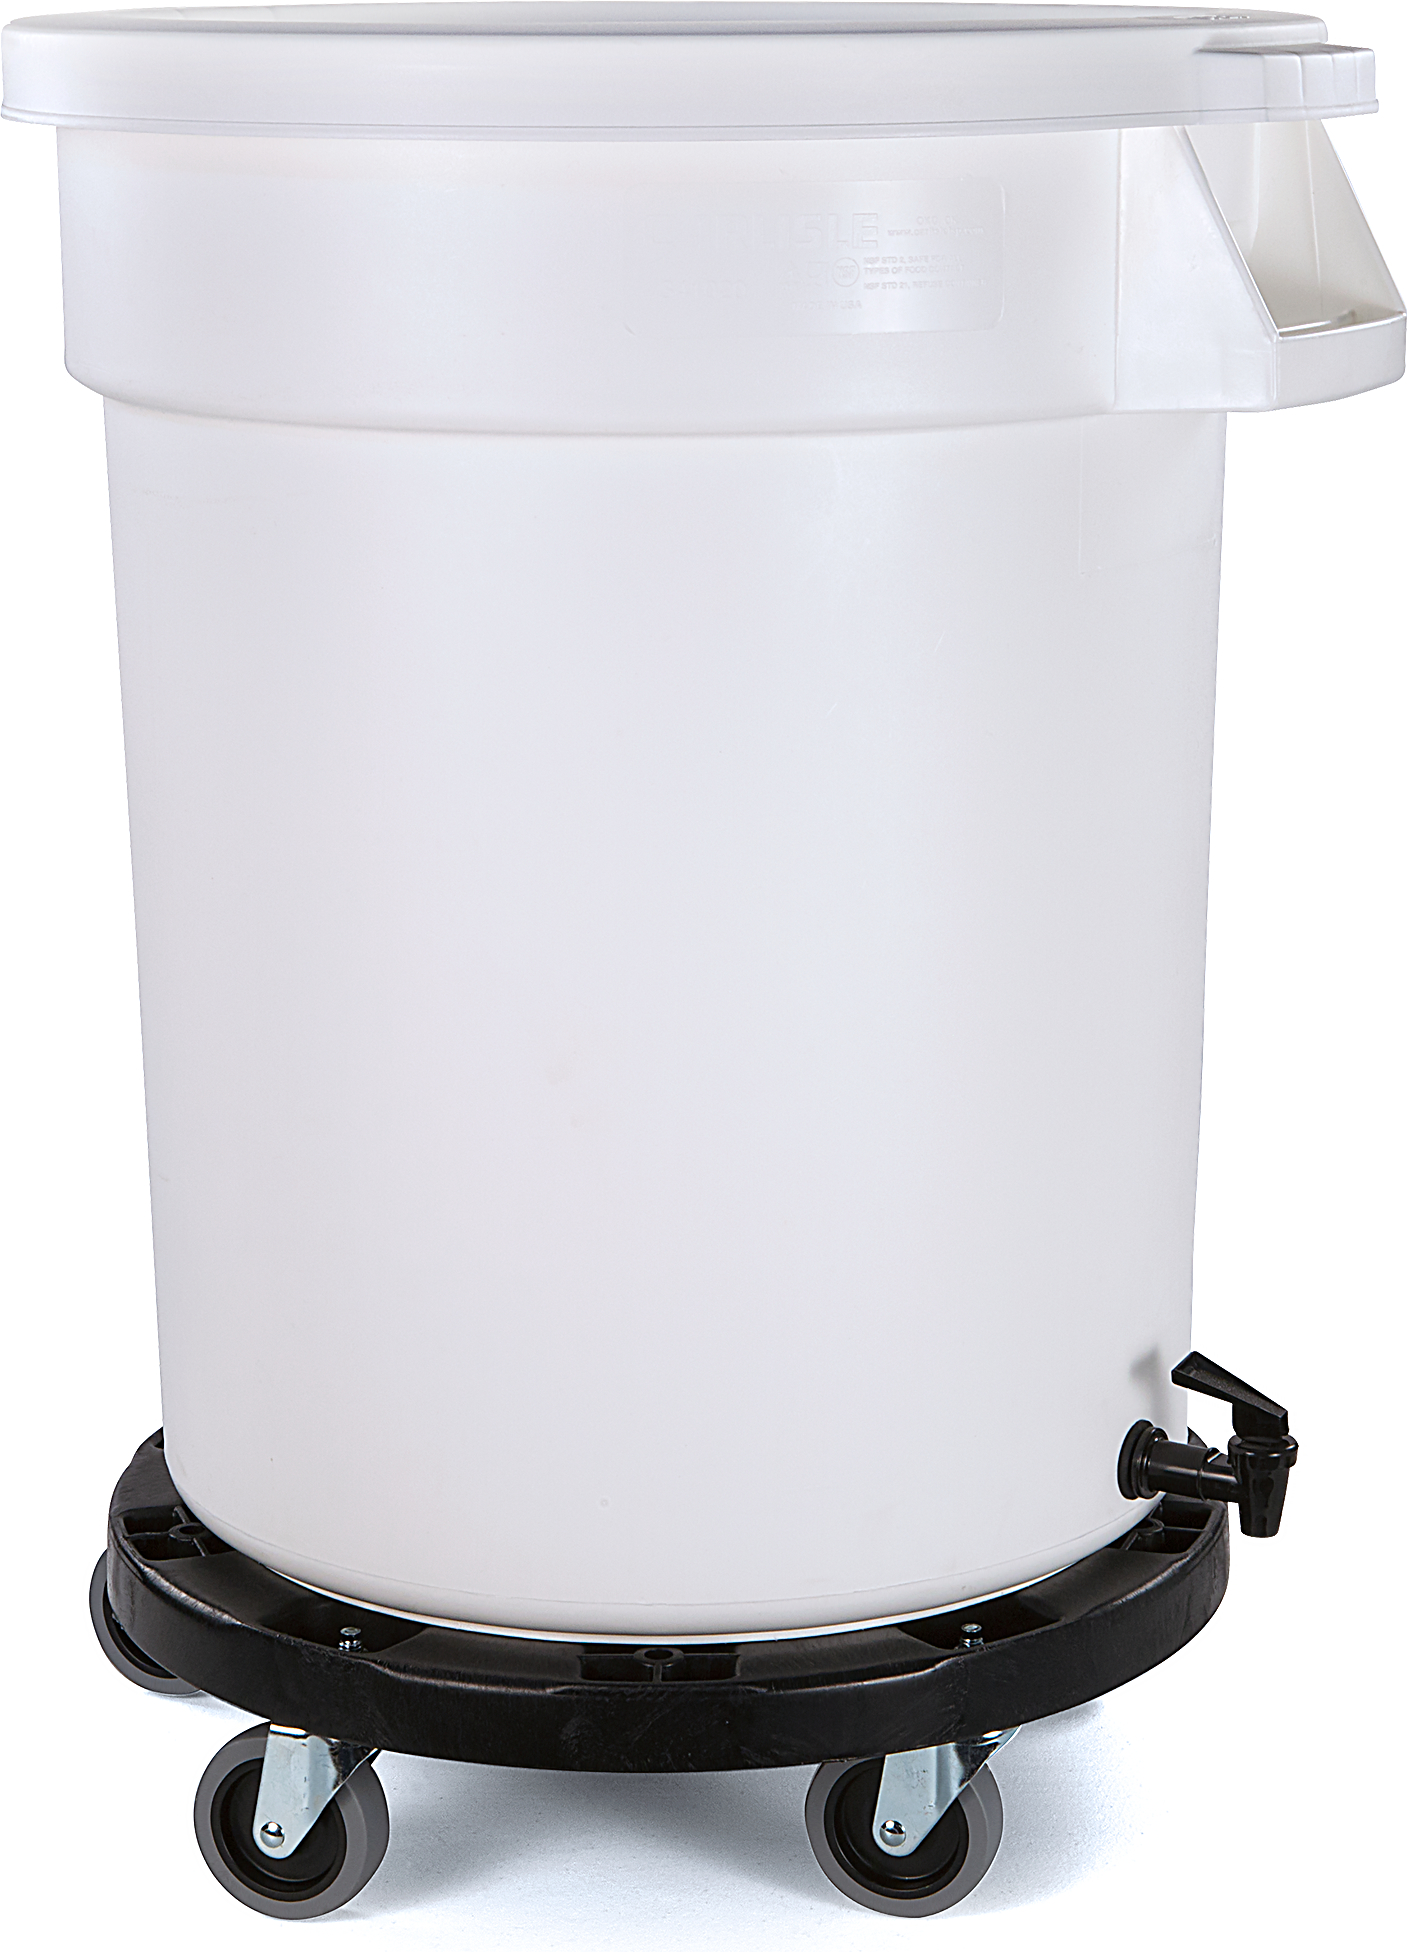 Bronco Round Mobile Soaking Marinating Solution (Container, Faucet Drain, Dolly, Lid Included) 20 Gallon - White